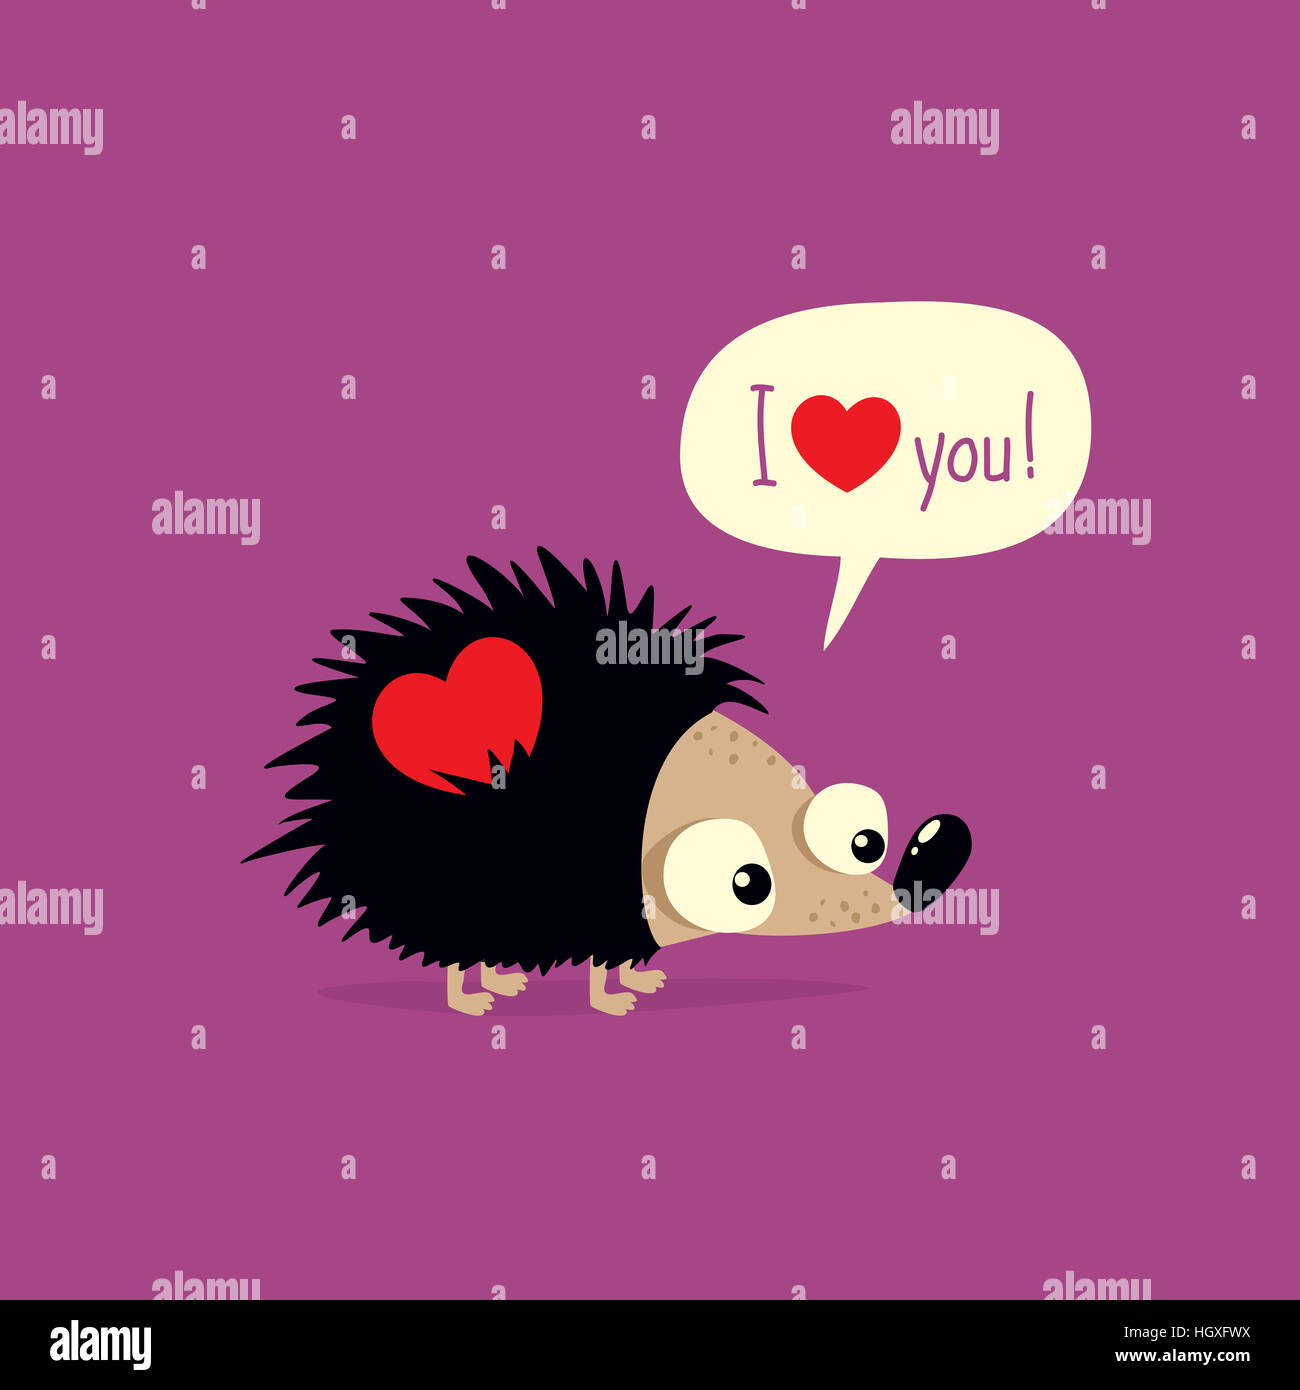 cute valentines day card with cartoon hedgehog saying i love you in speech bubble